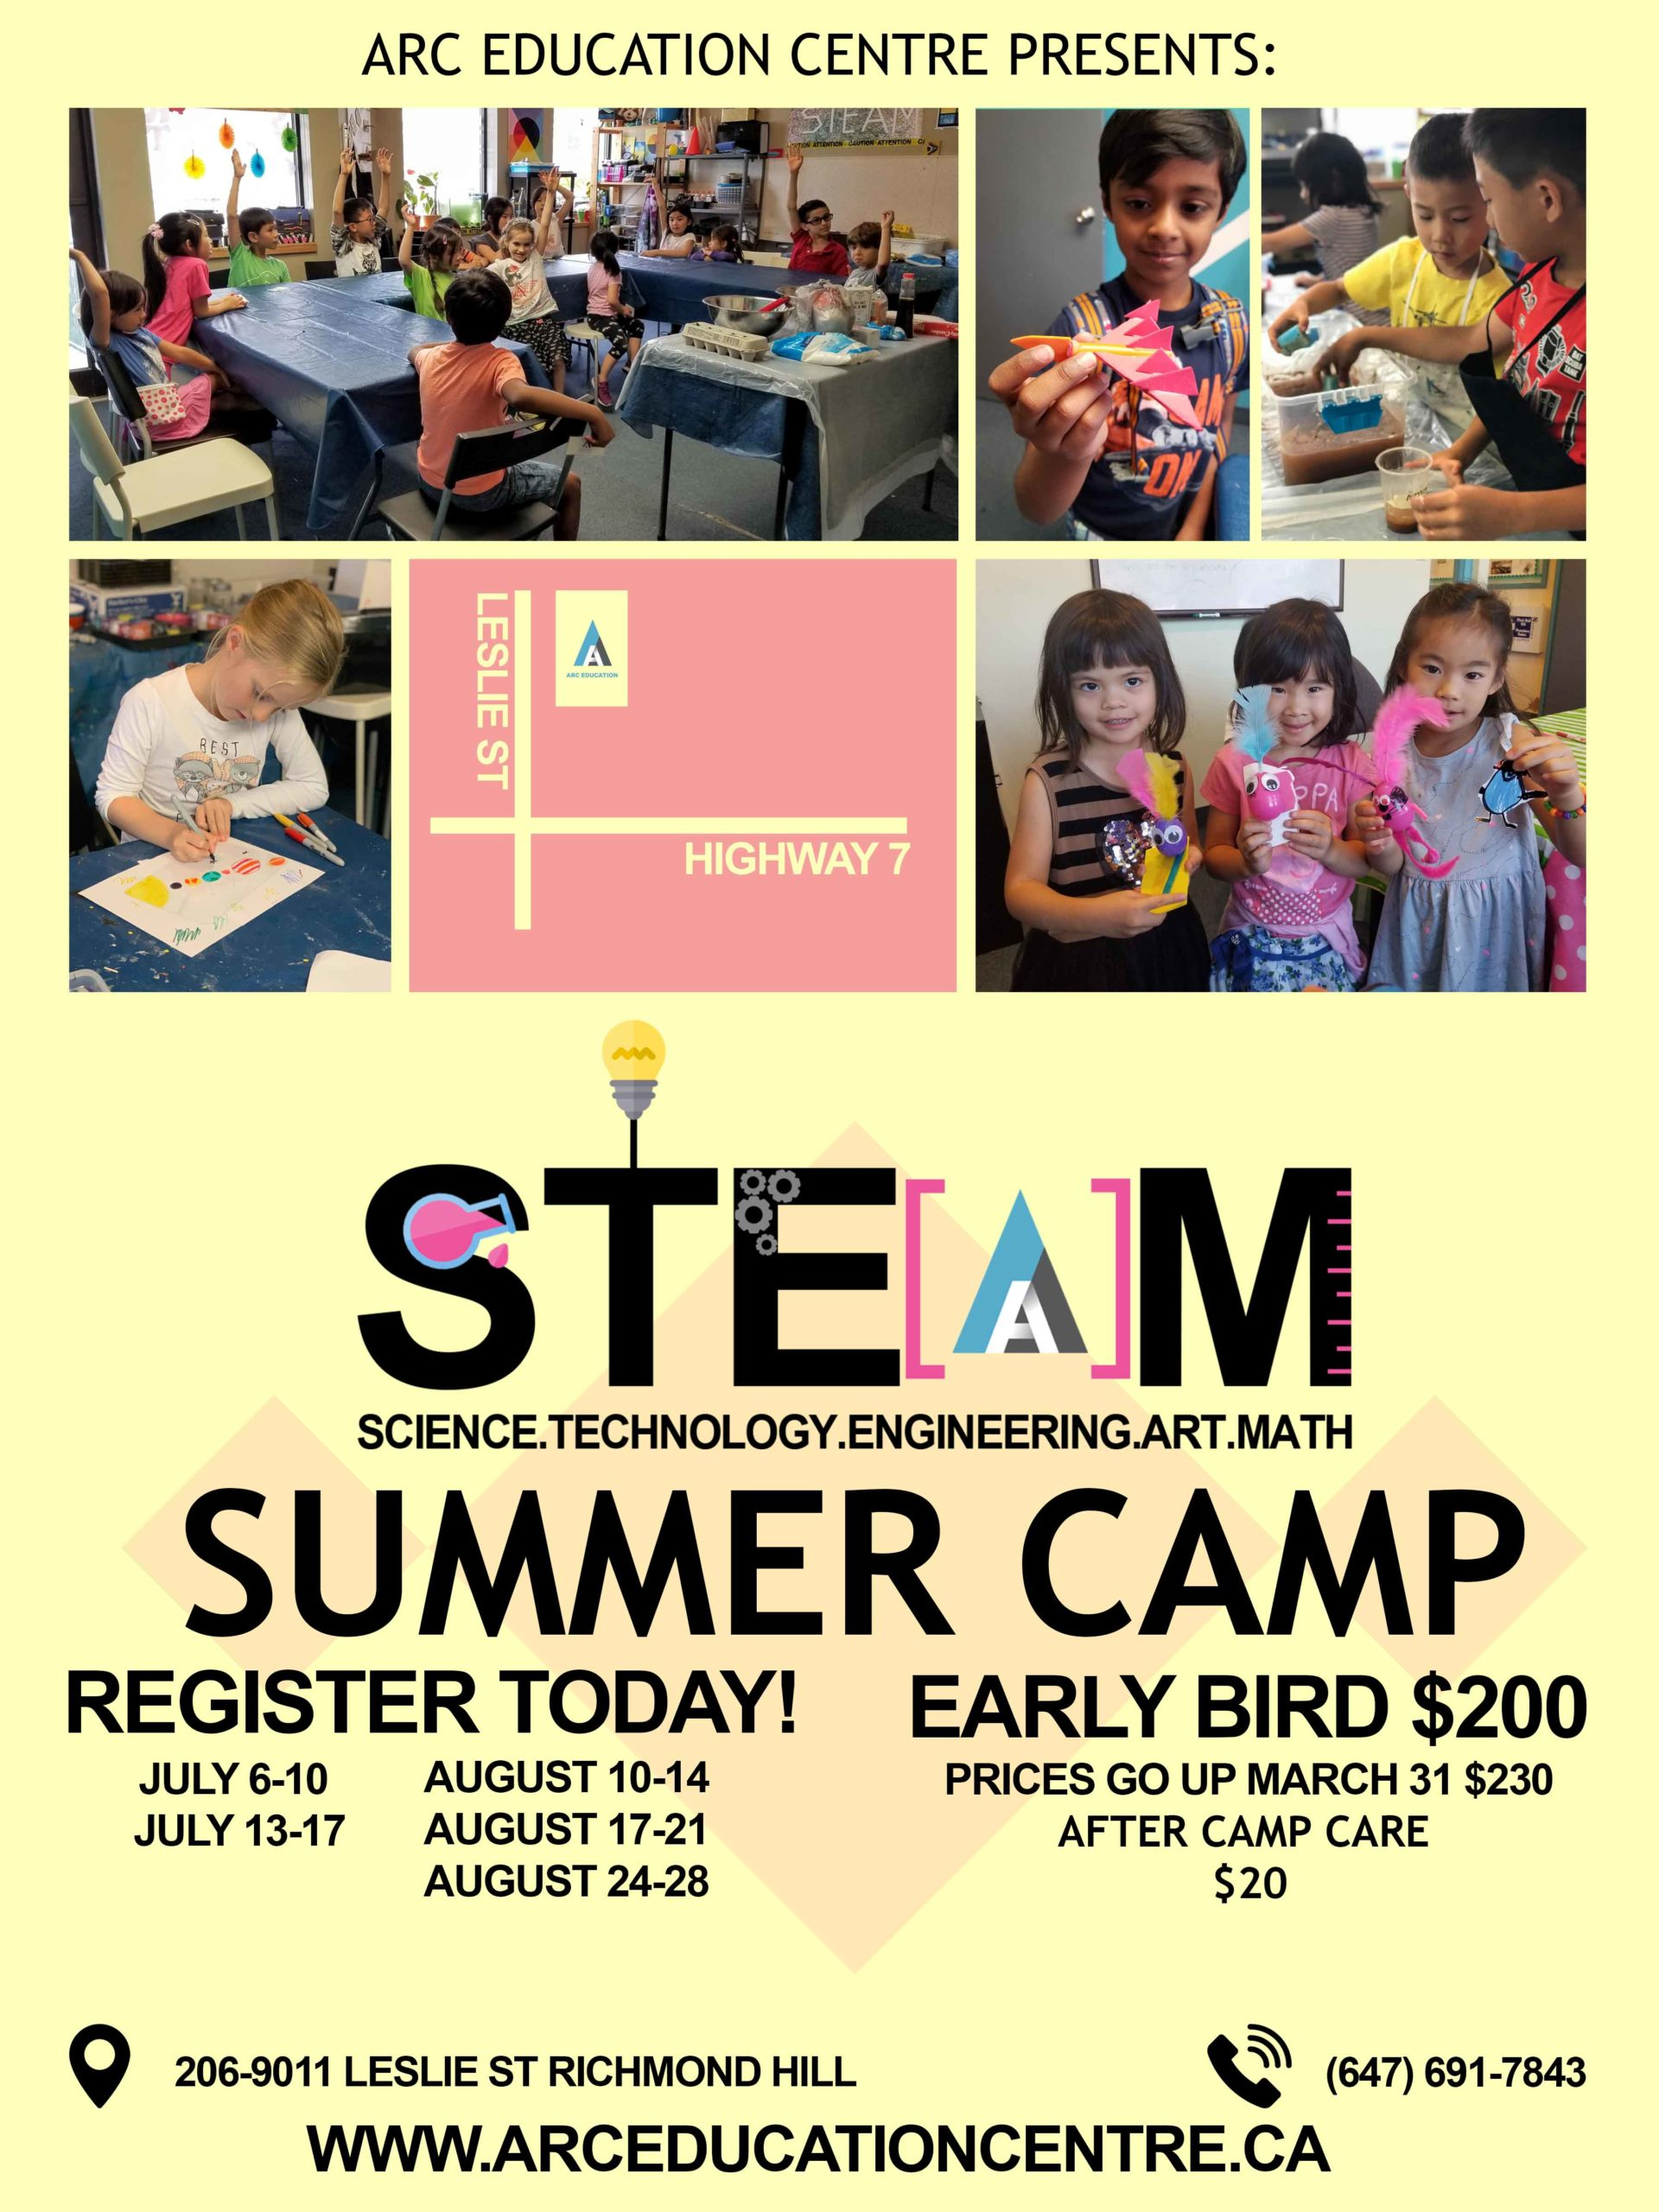 S.T.E.A.M. Summer Camp picture